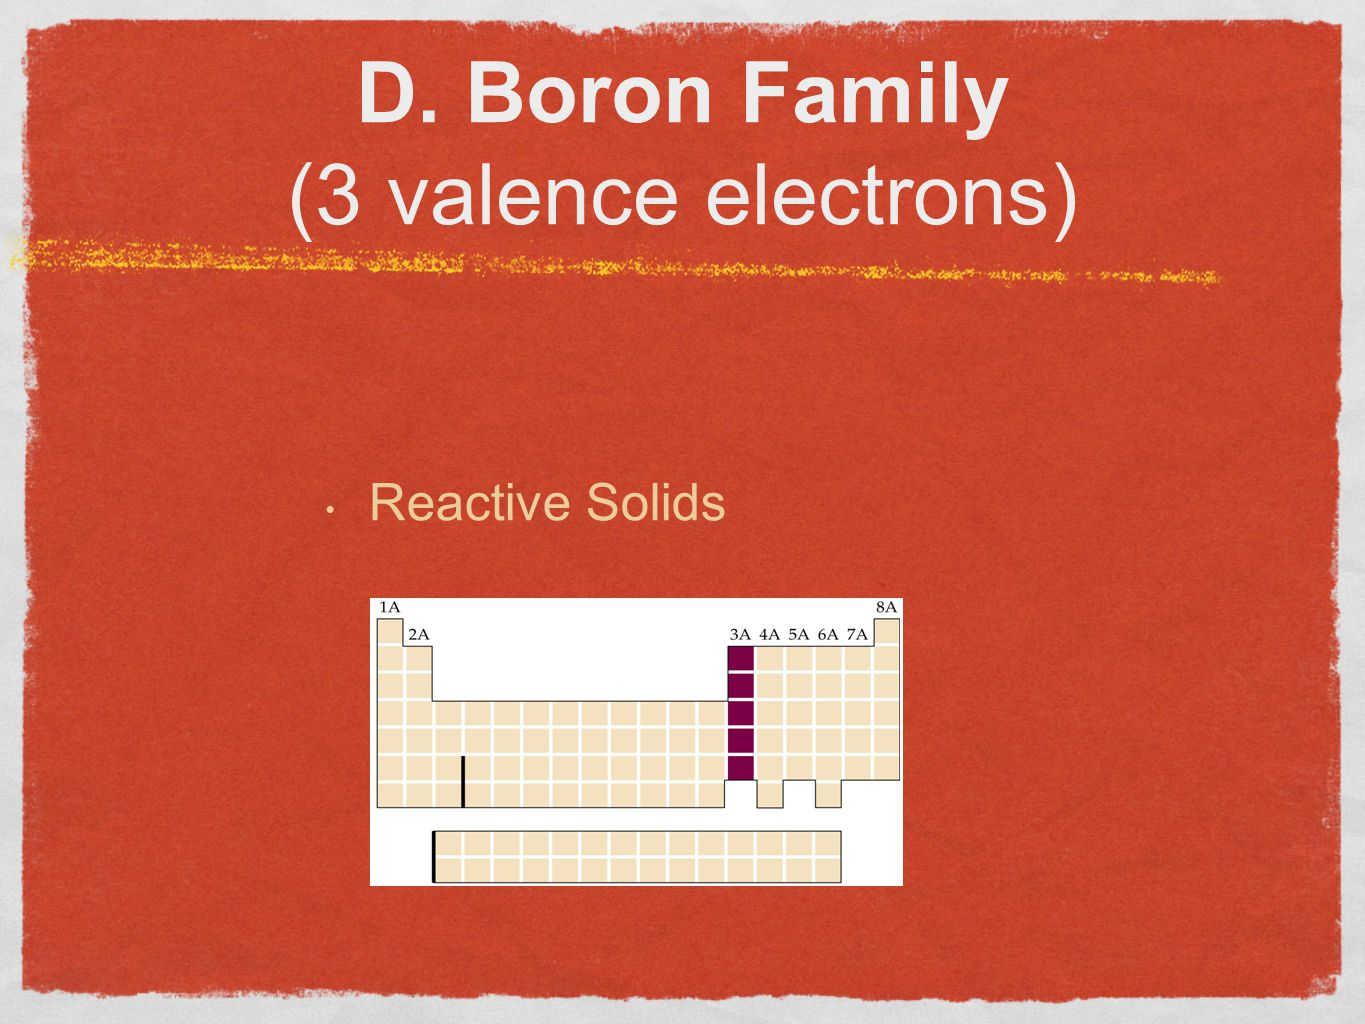 D. Boron Family (3 valence electrons)